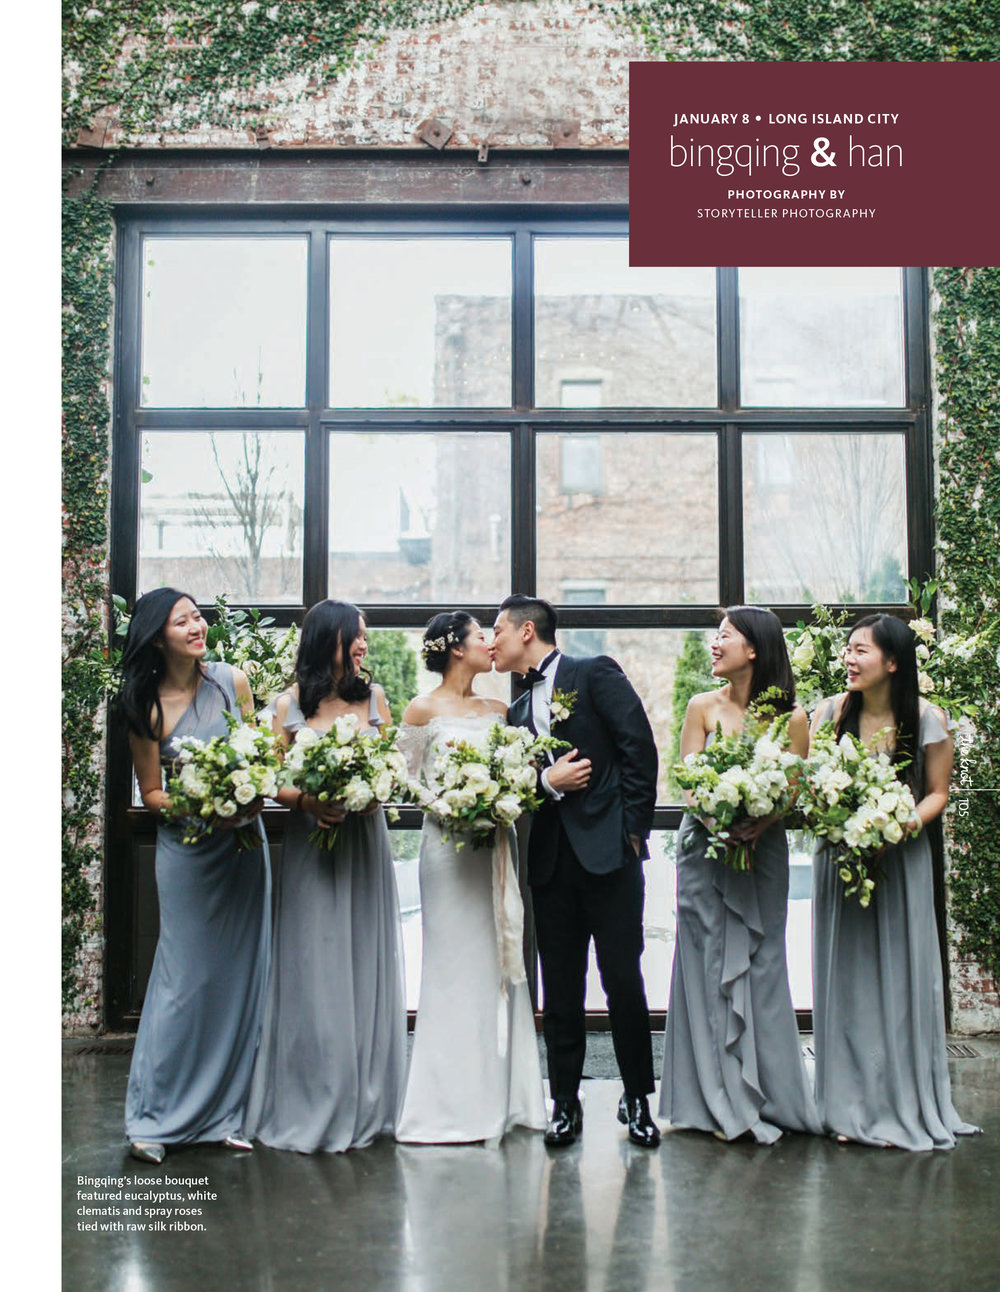 The Knot New York 2018 Fall/Winter: Bingqing and Han's Foundry Wedding